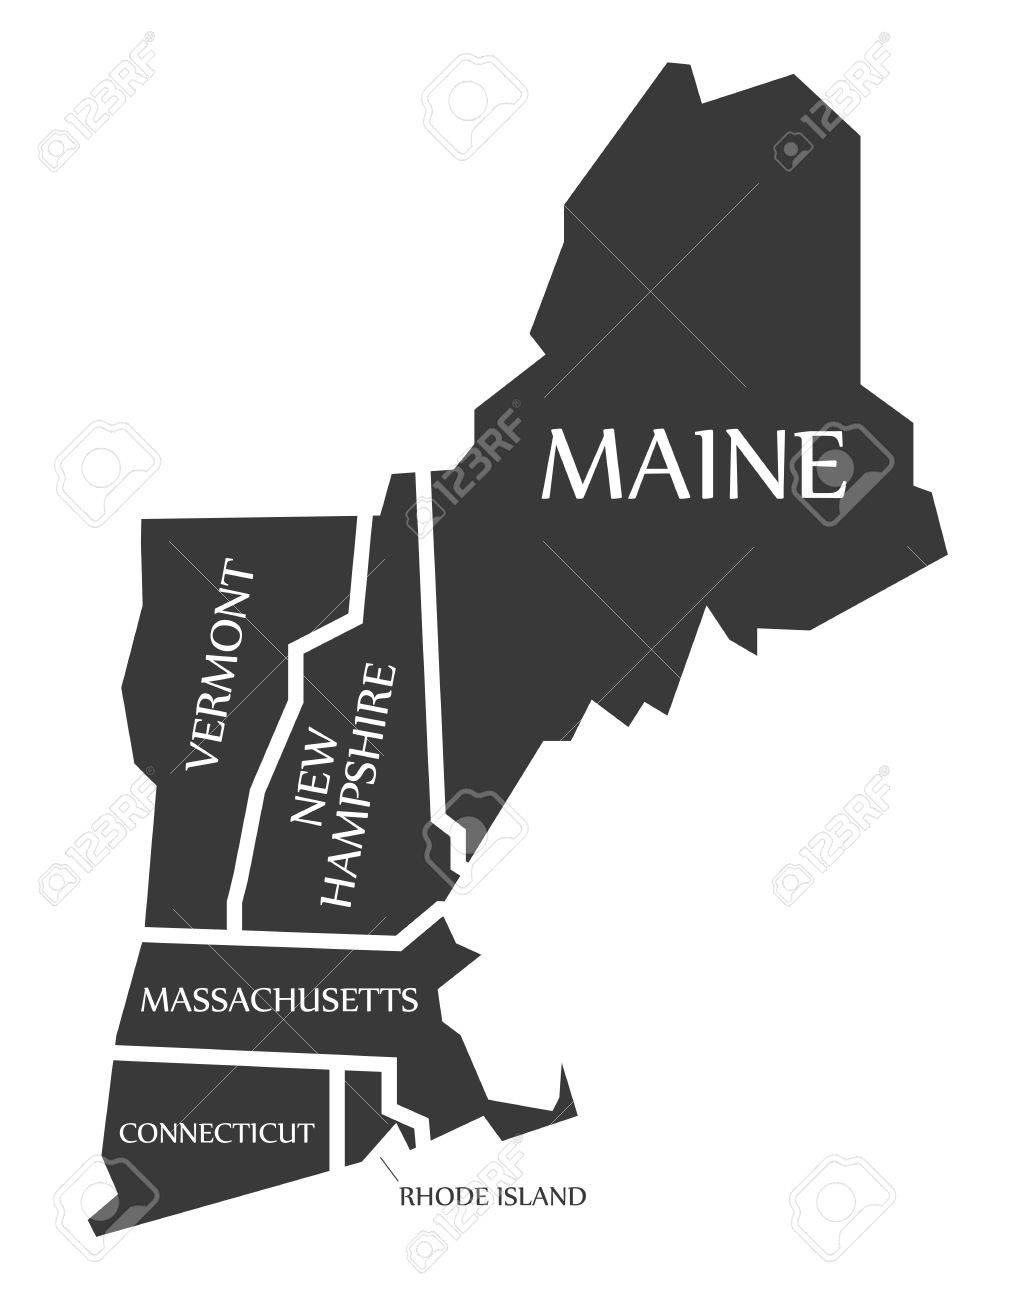 Maine - New Hampshire - Vermont - Massachusetts Map labelled..